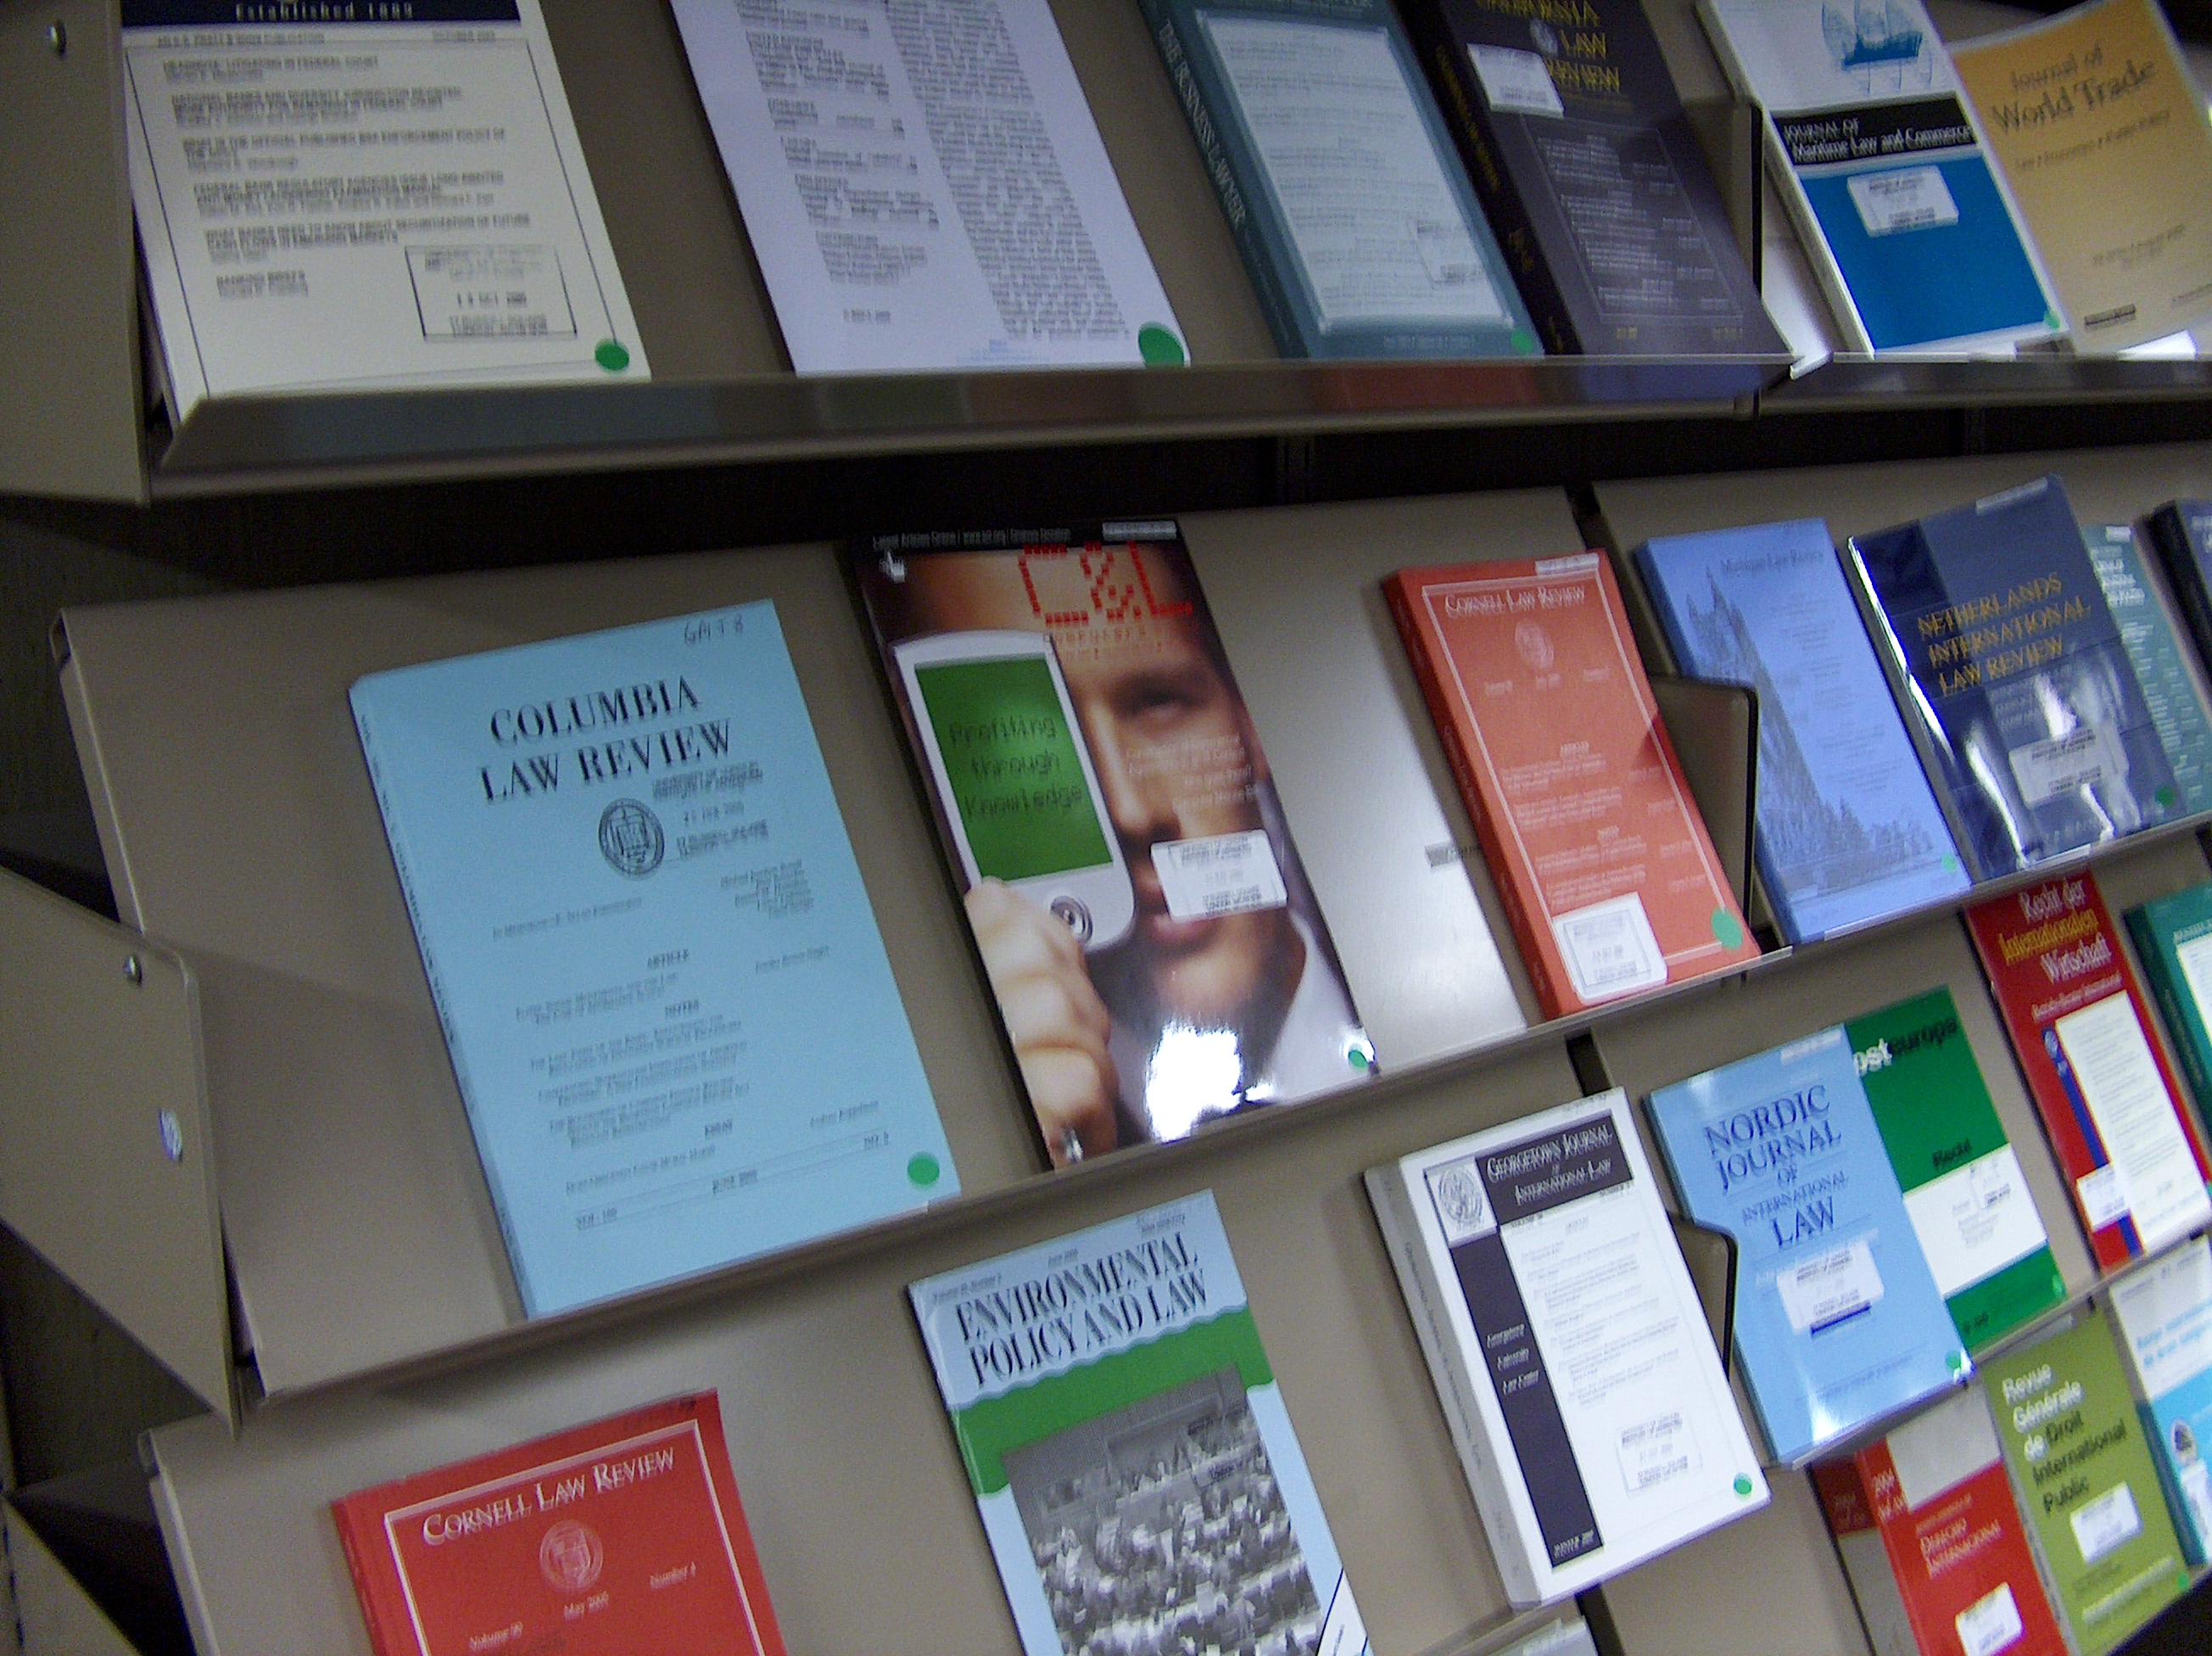 Current journals on the display rack